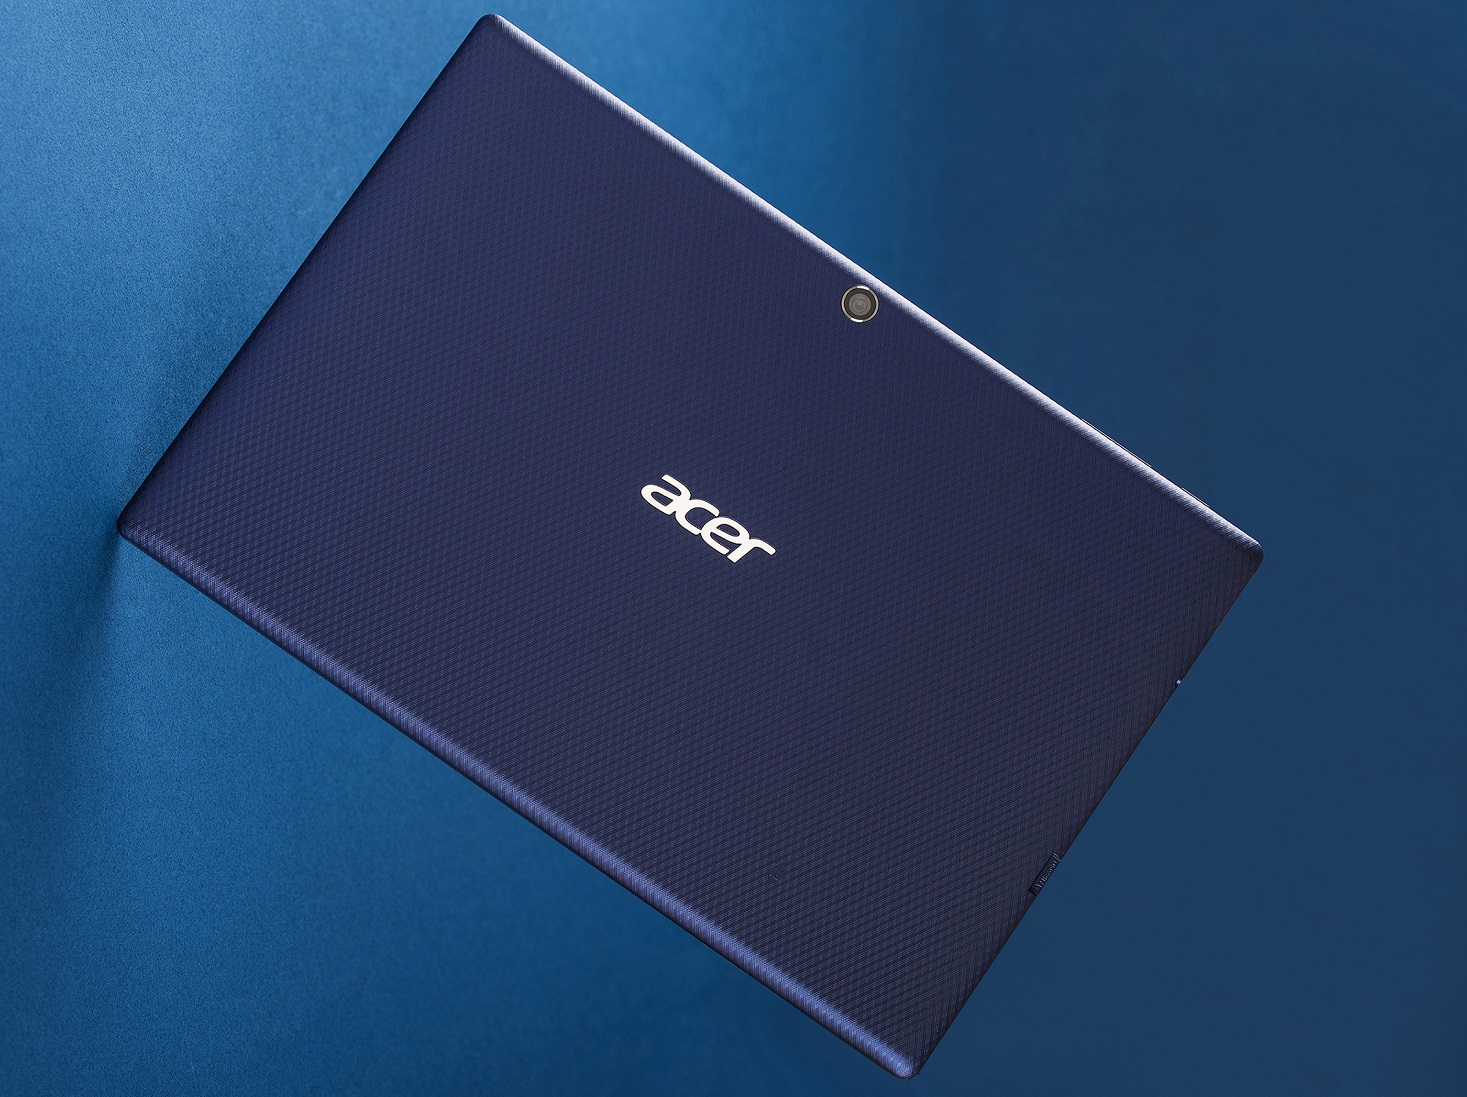 Acer_Tablet_Iconia_Tab_10_